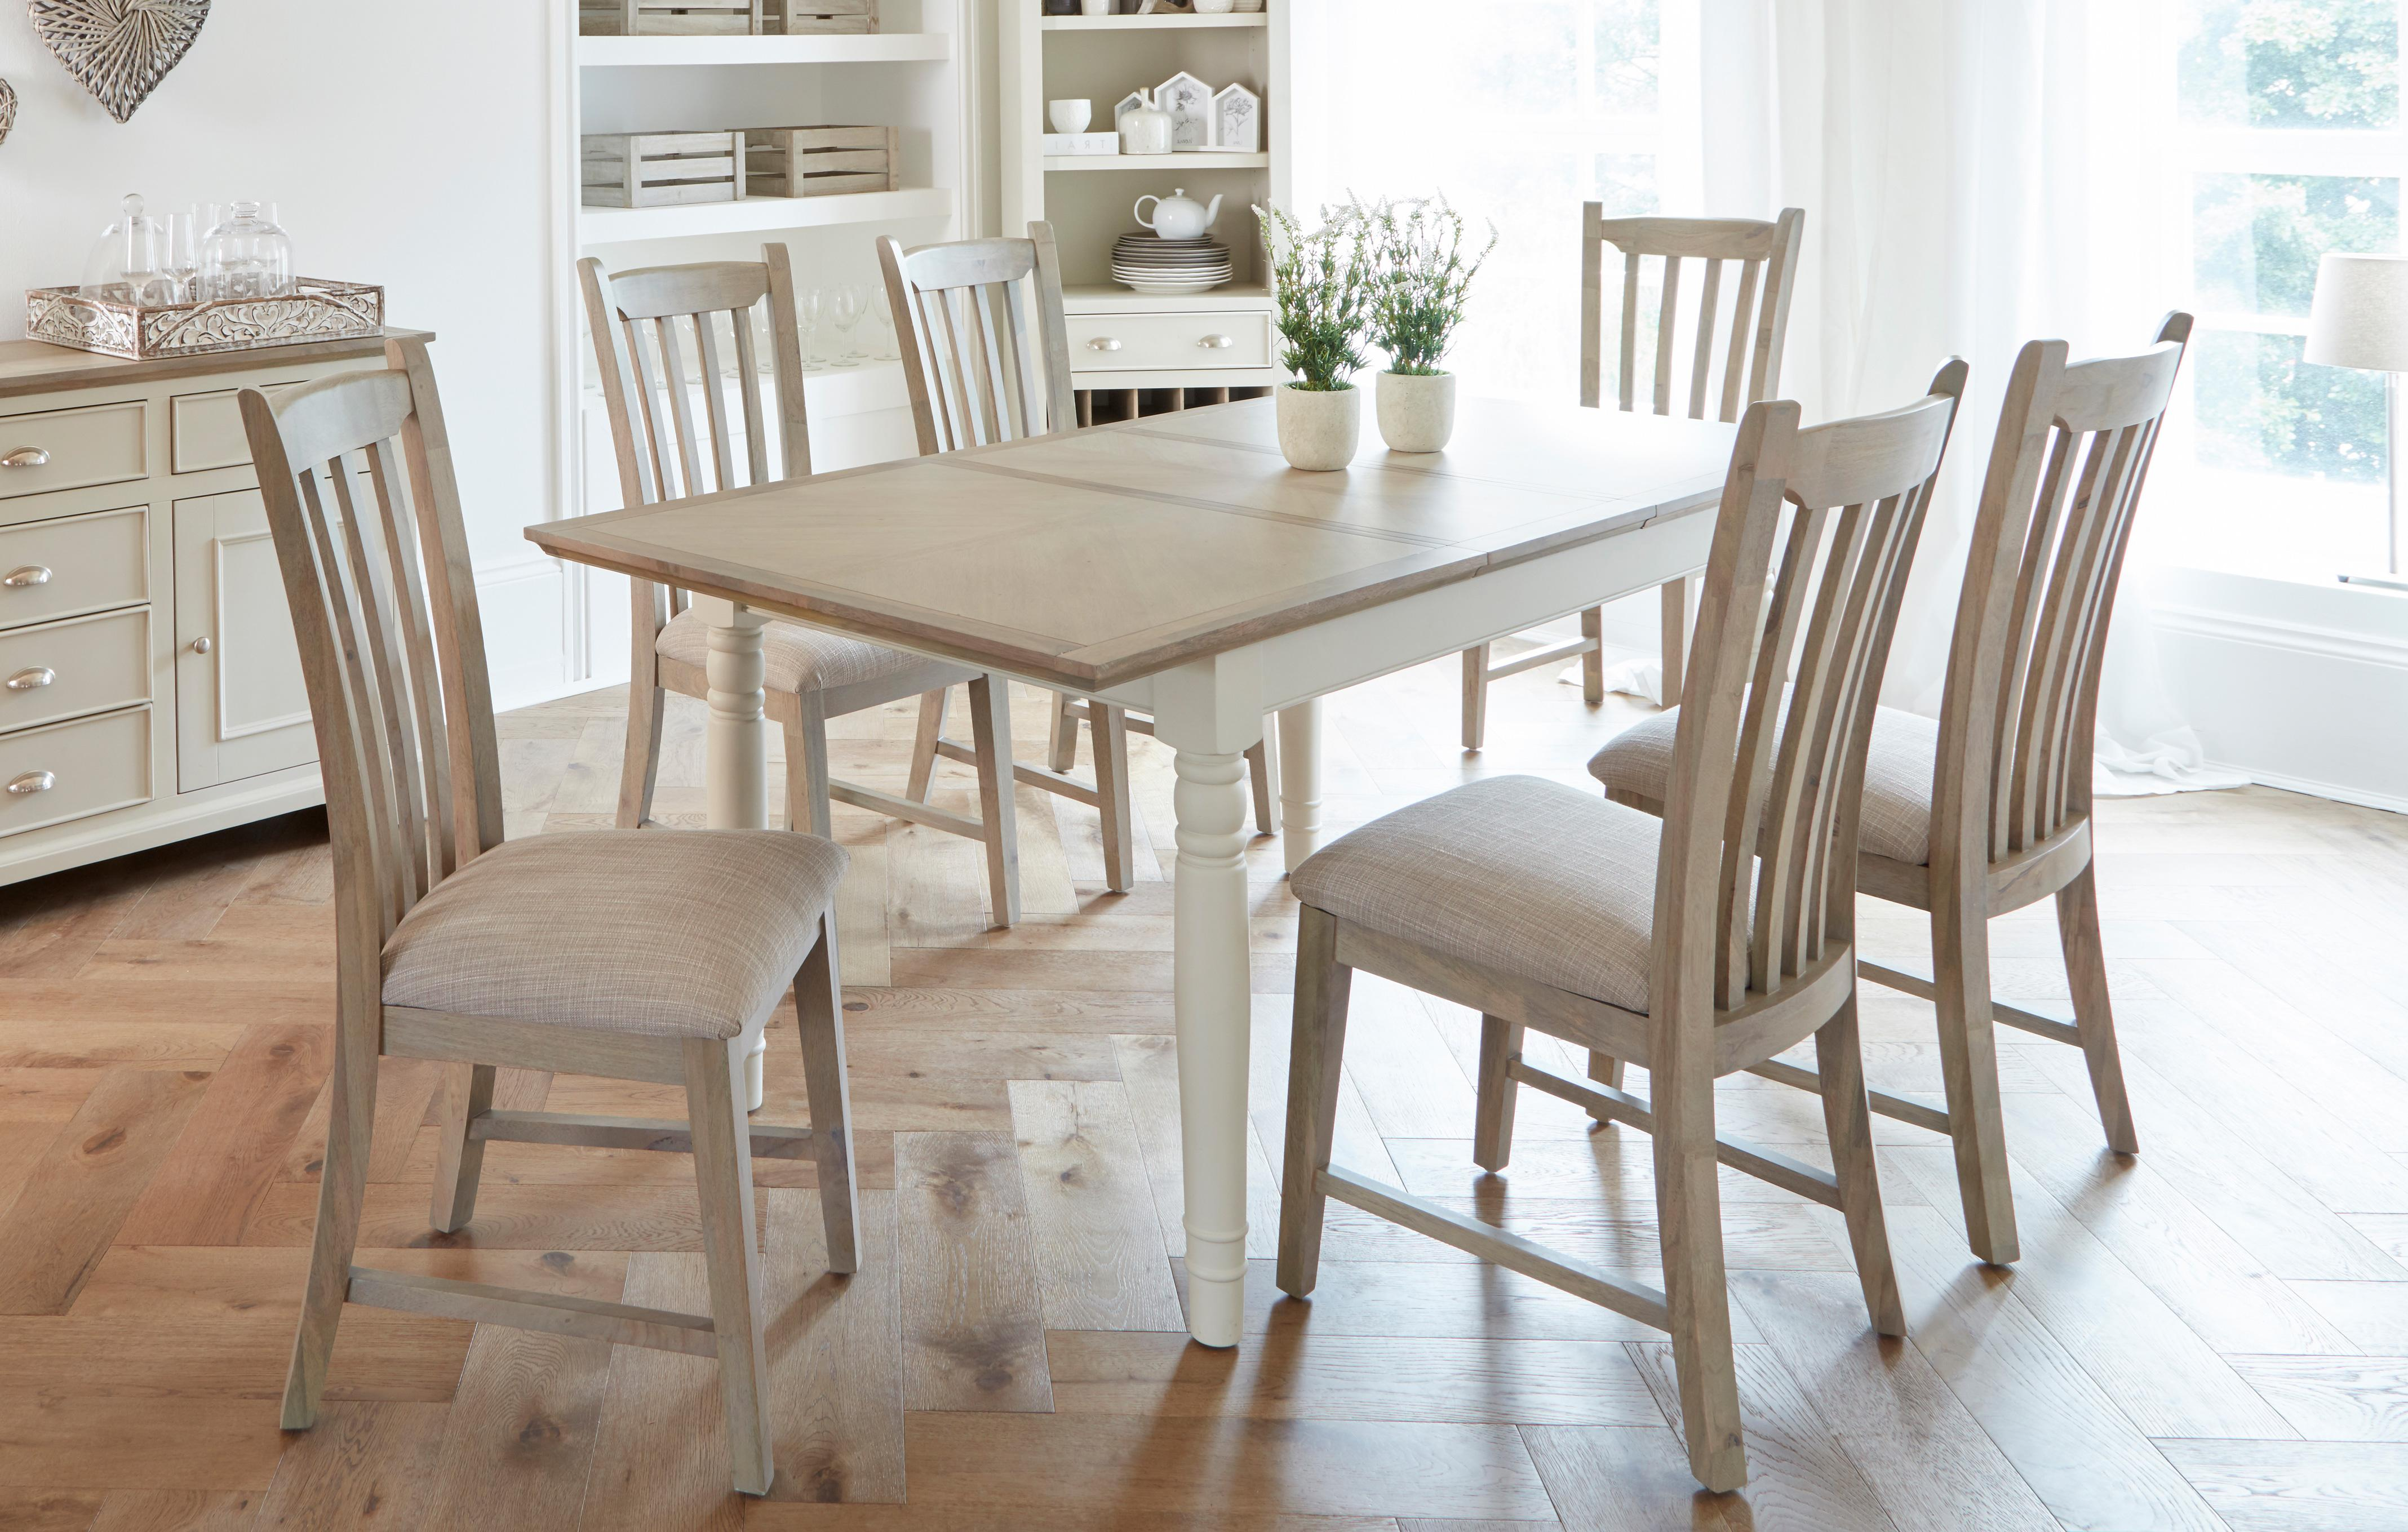 Valencia Rectangular Extending Table Set Of 4 Dining Chairs With Fabric Seat Pad